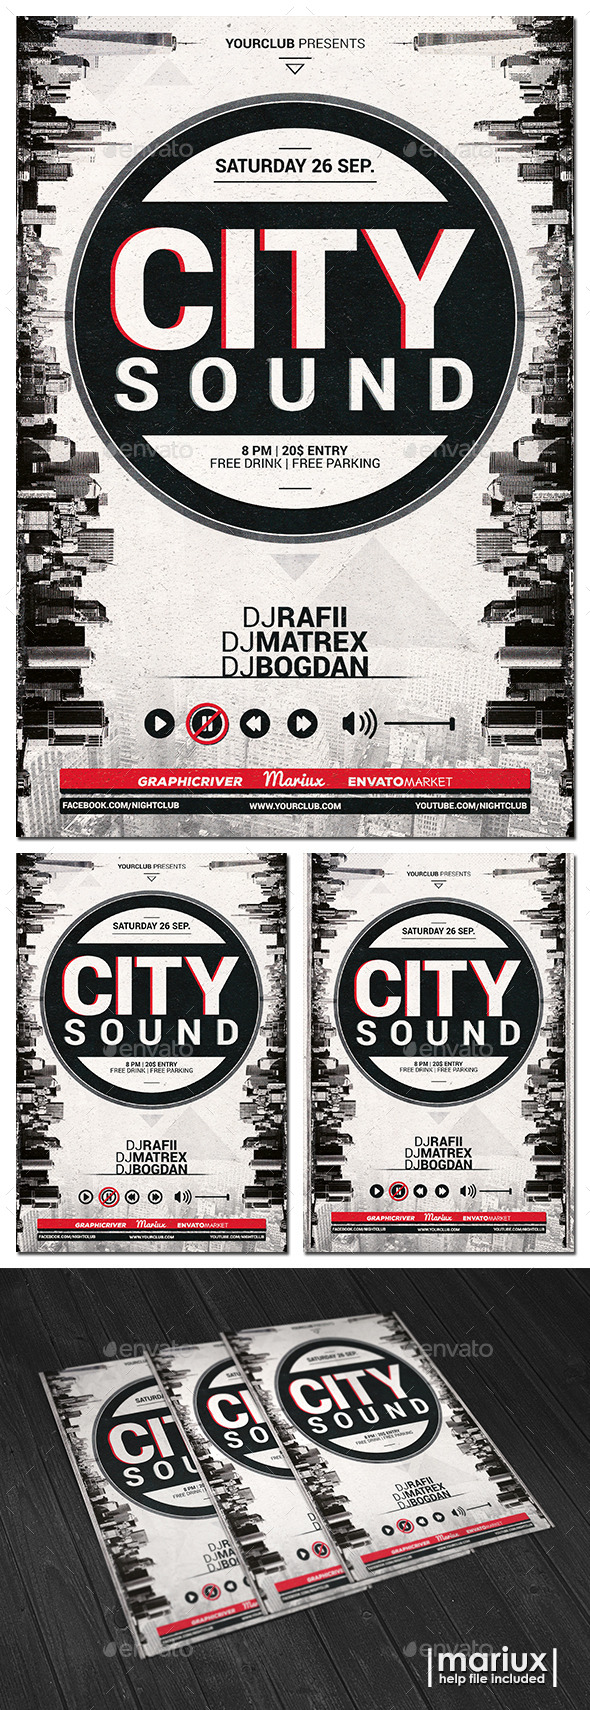 City Sound Party Flyer - Clubs & Parties Events